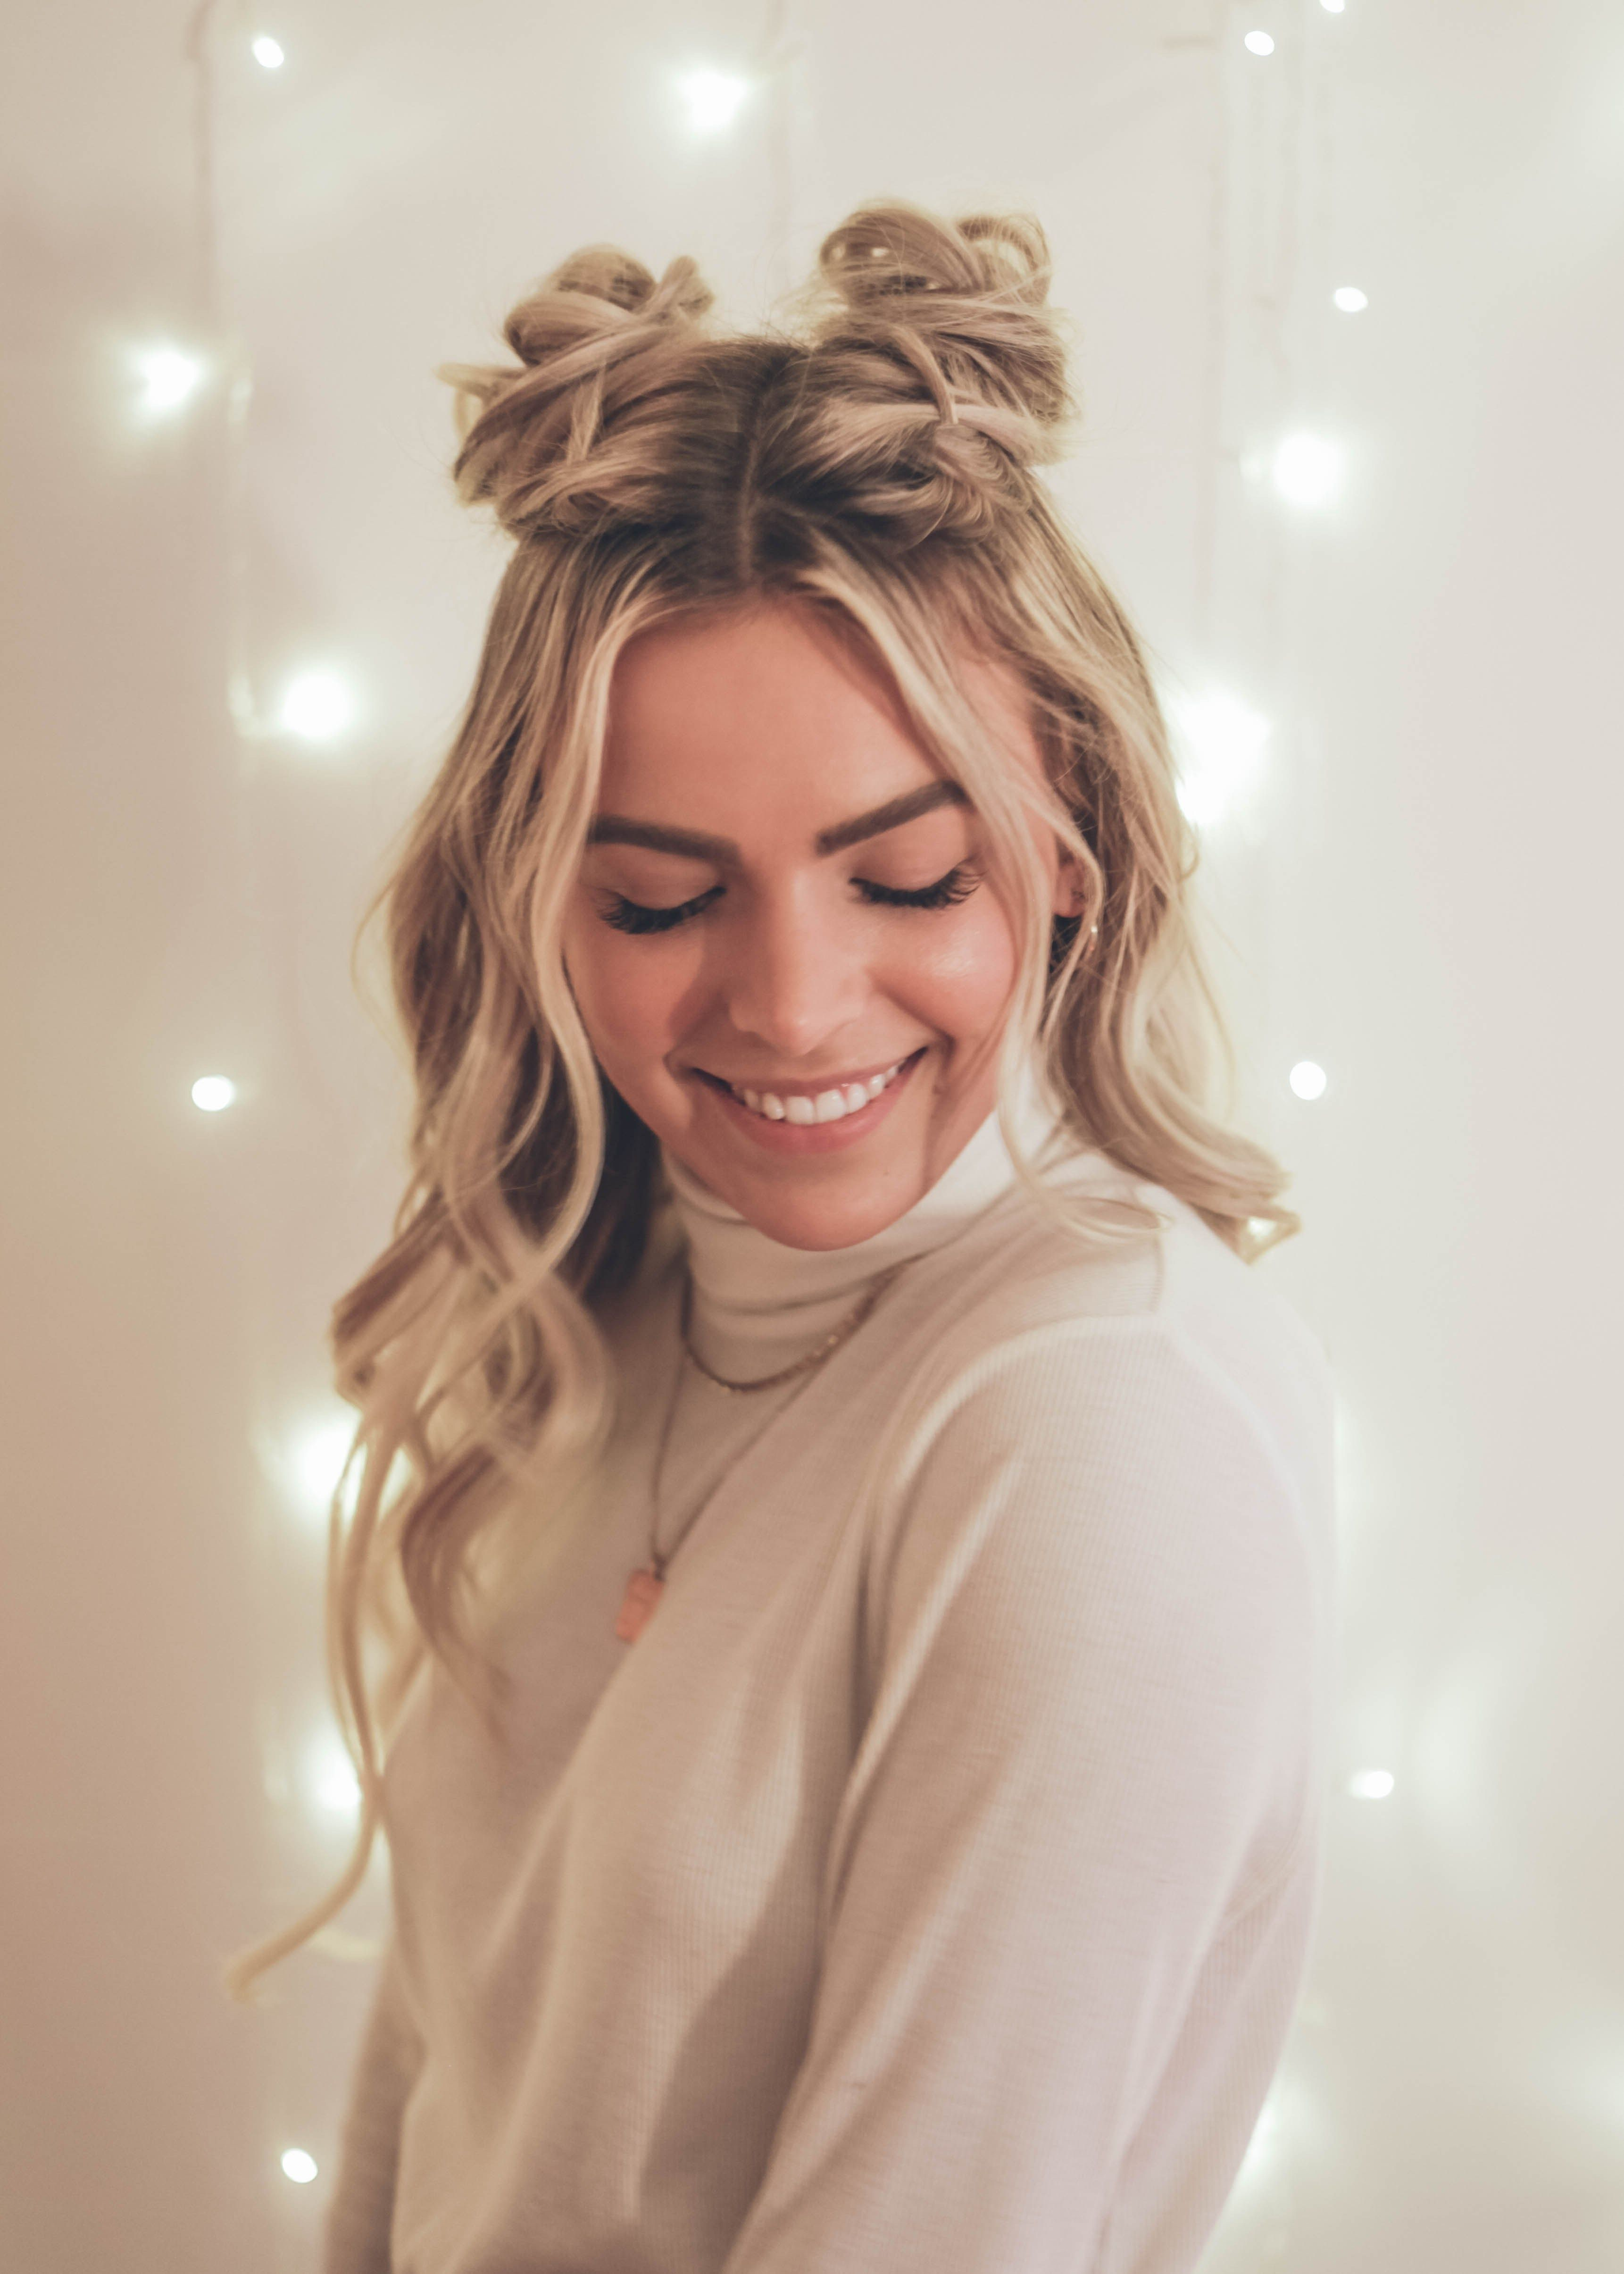 how to make space buns diy tutorial | hair style in 2019